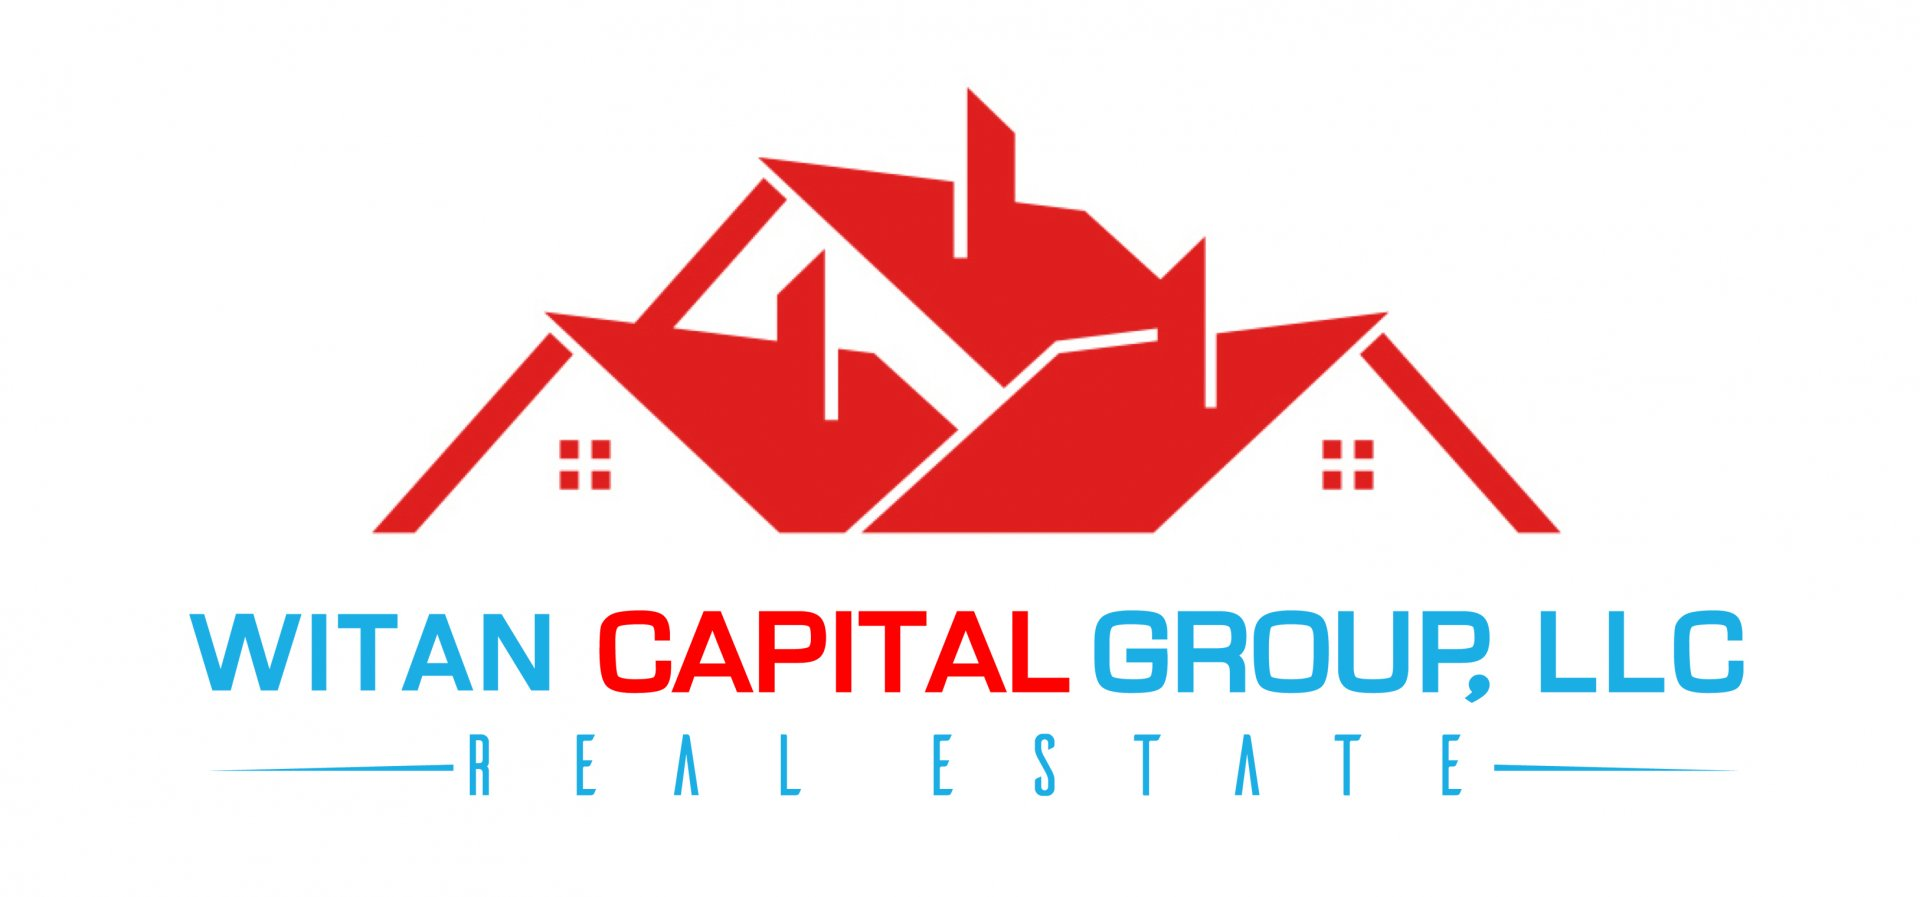 Witan Capital Group, LLC logo